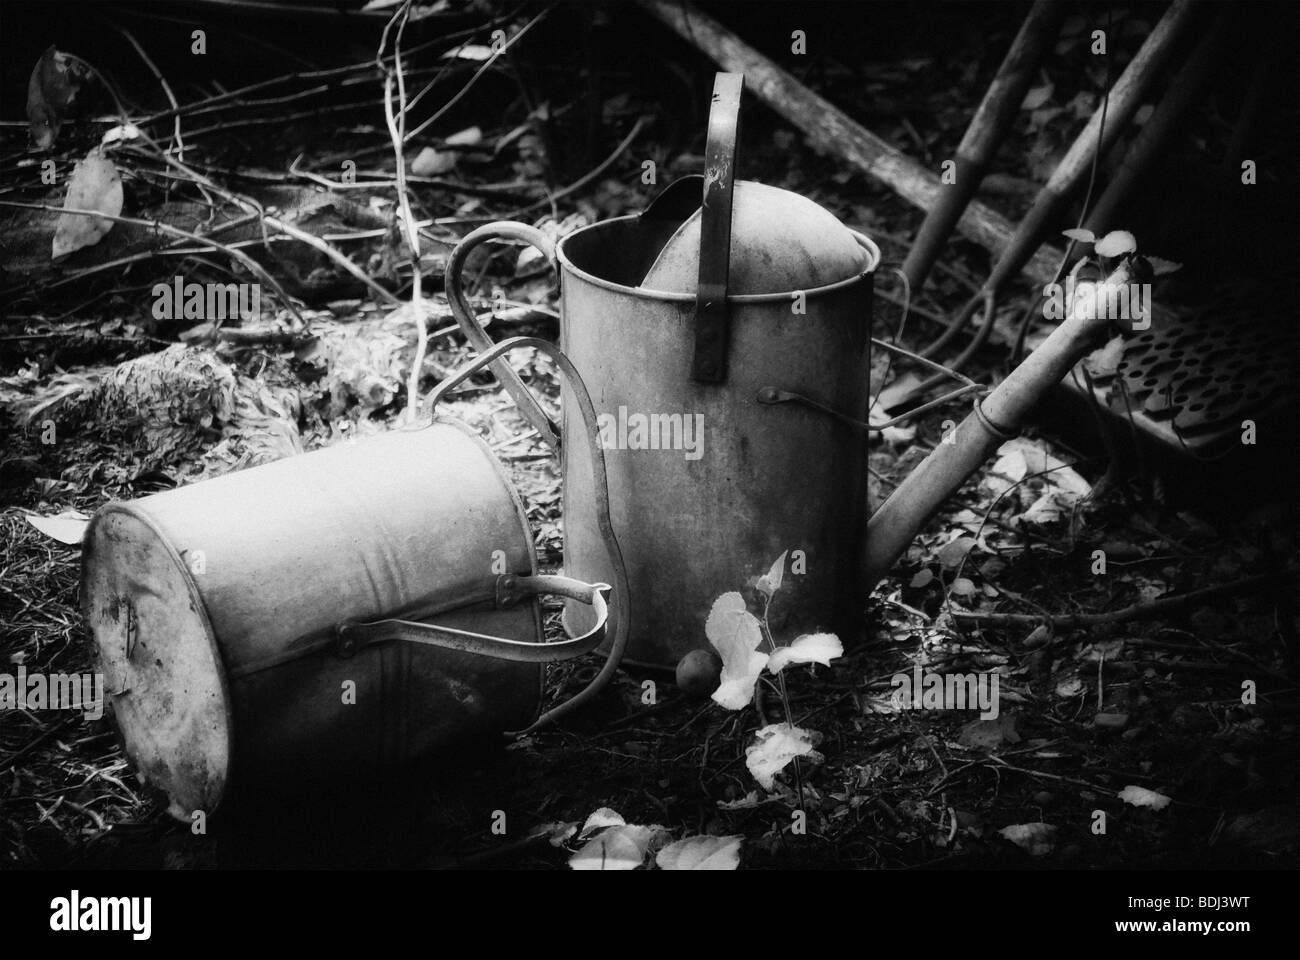 Two Galvanized Watering Cans - Stock Image